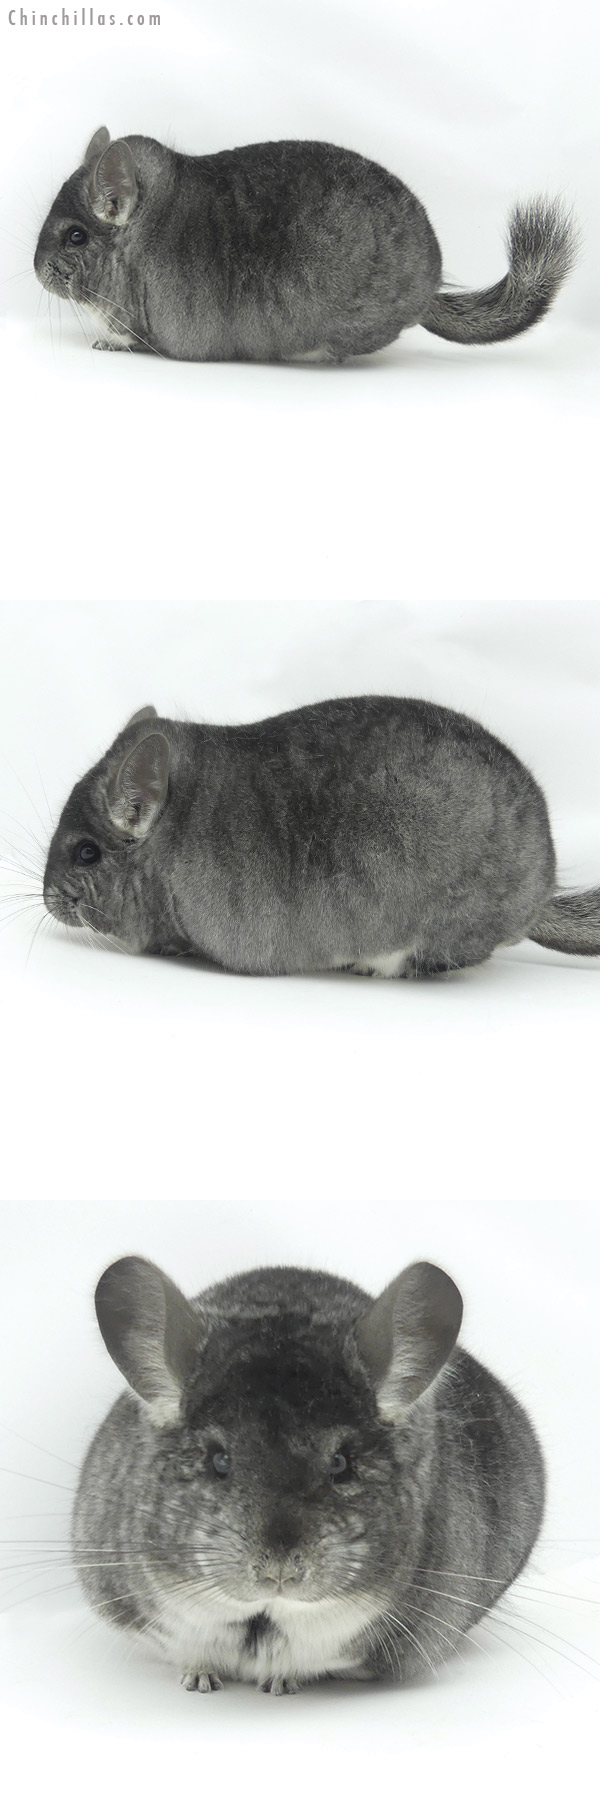 20140 Large Blocky Premium Production Quality Standard Female Chinchilla